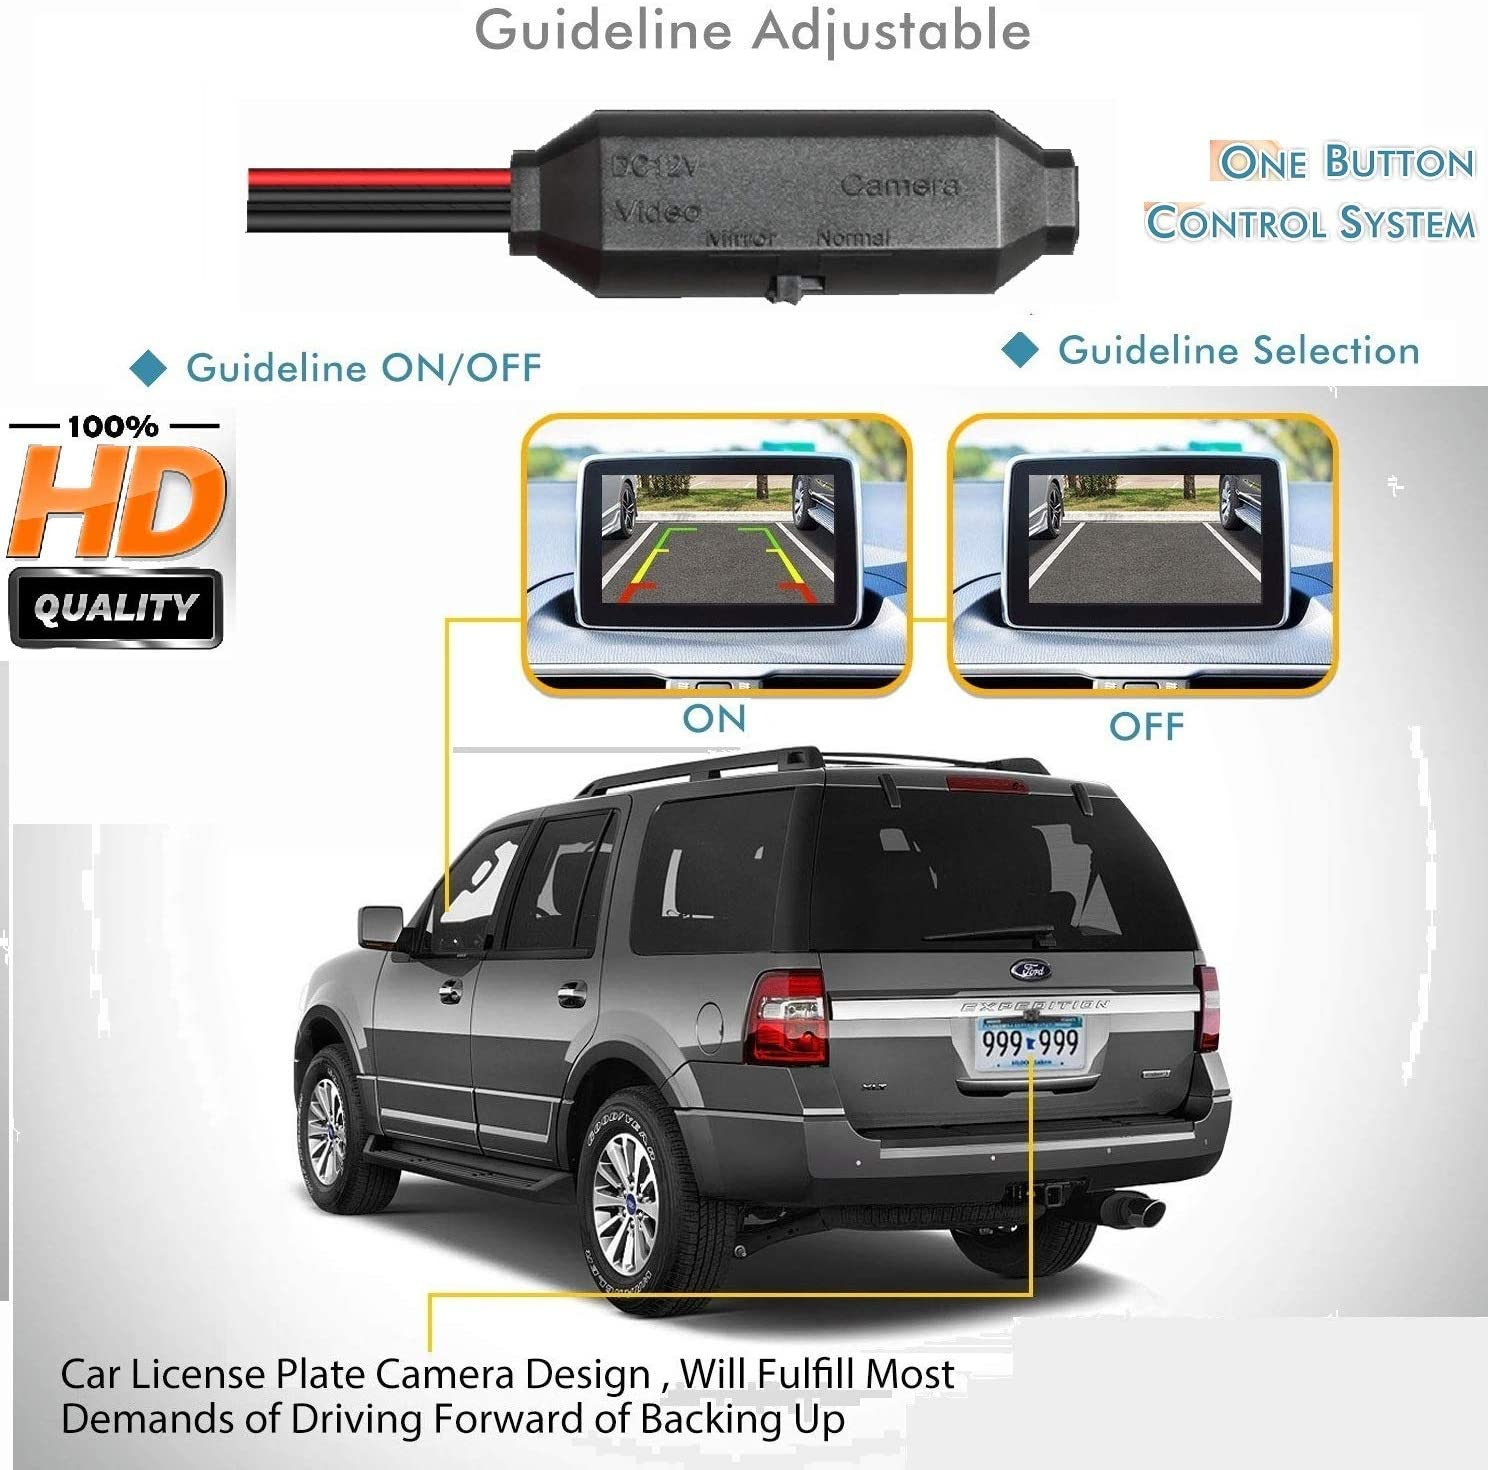 HD 1280x720p Reversing Camera in Number Plate Light License Rear View Backup Camera Waterproof Night Vision for Nissan Kicks Sunny//Qashqai//X-Trail//Geniss//Dualis//Navara//Juke